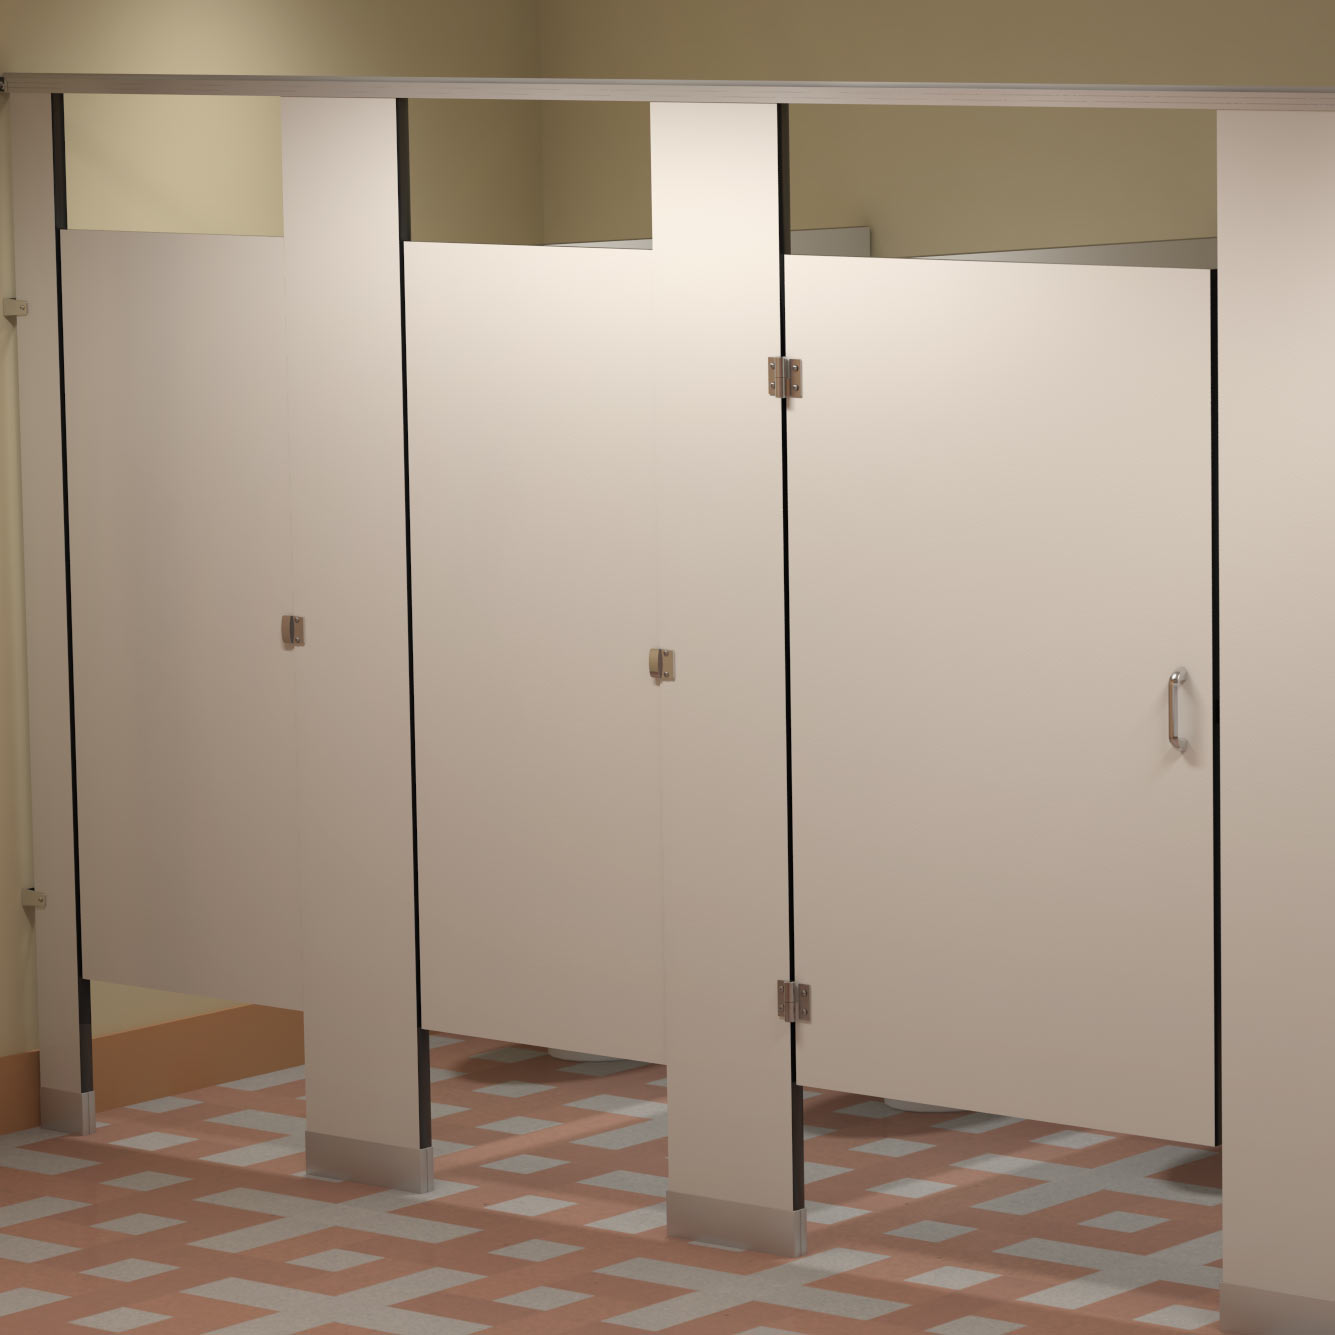 Custom Layout Design For Commercial Restroom Dividers - Custom bathroom partitions